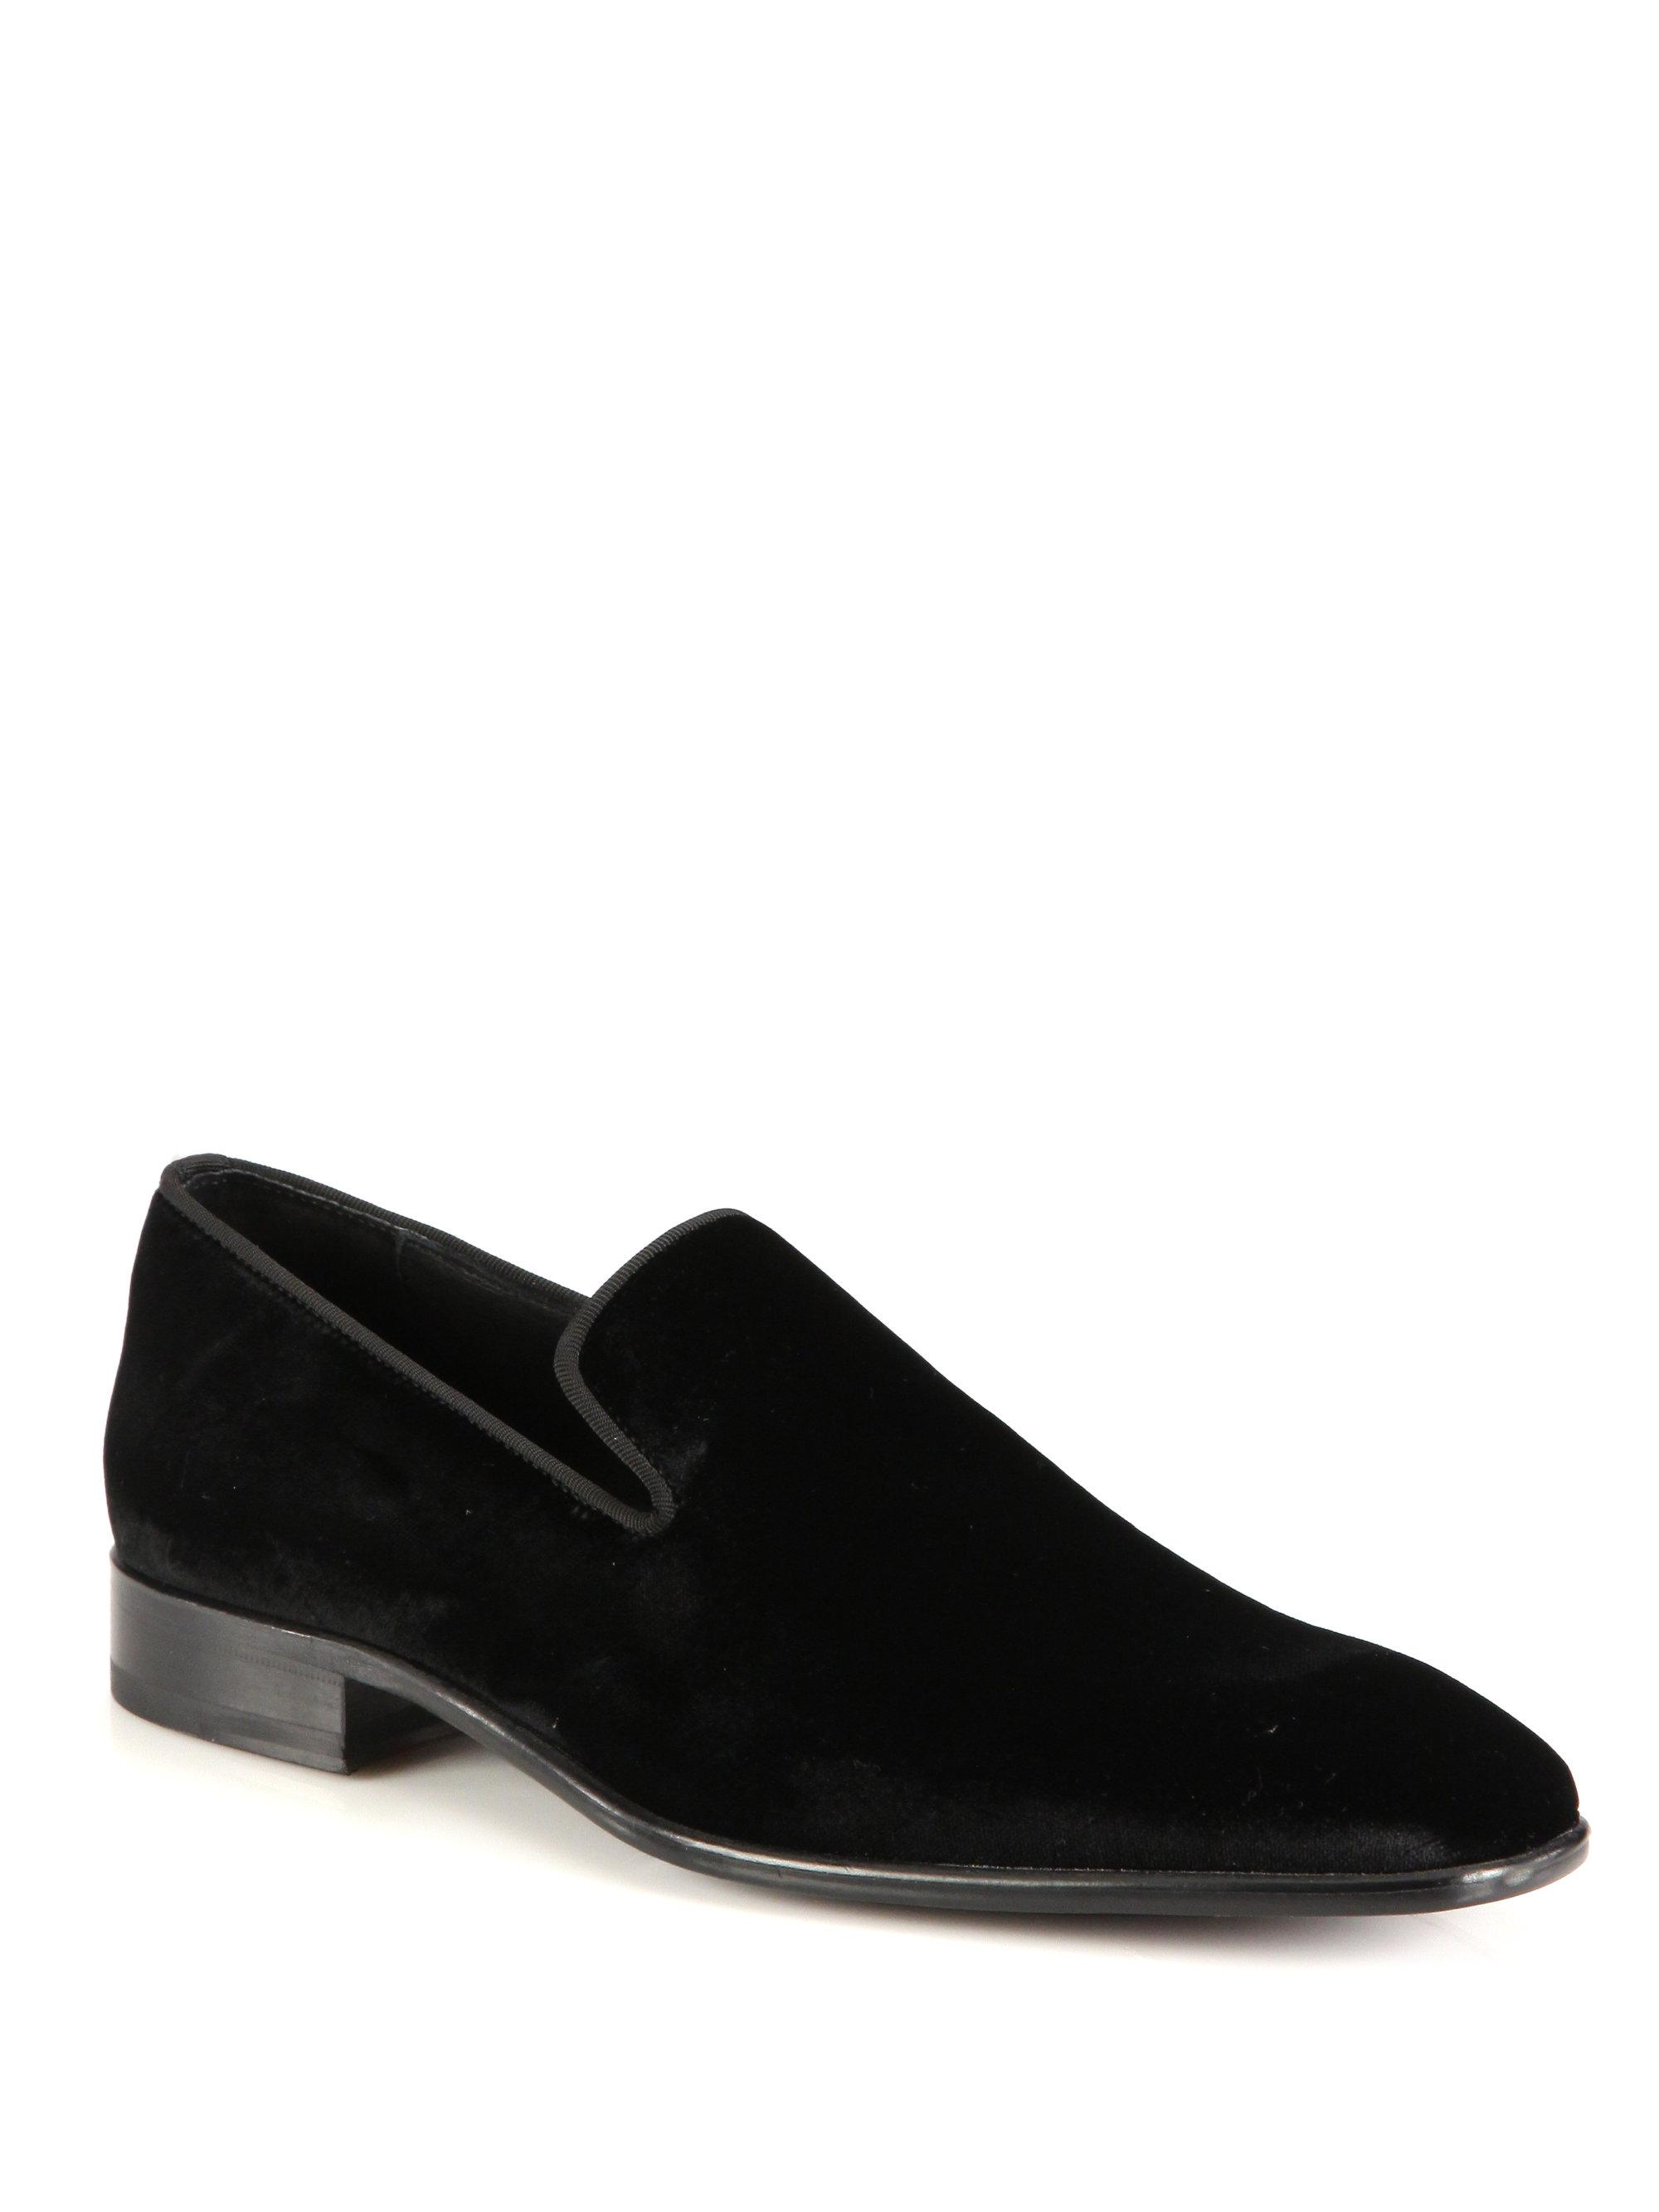 Saks Fifth AvenueCOLLECTION BY MAGNANNI Tri-Media Penny Loafers MAuuNF